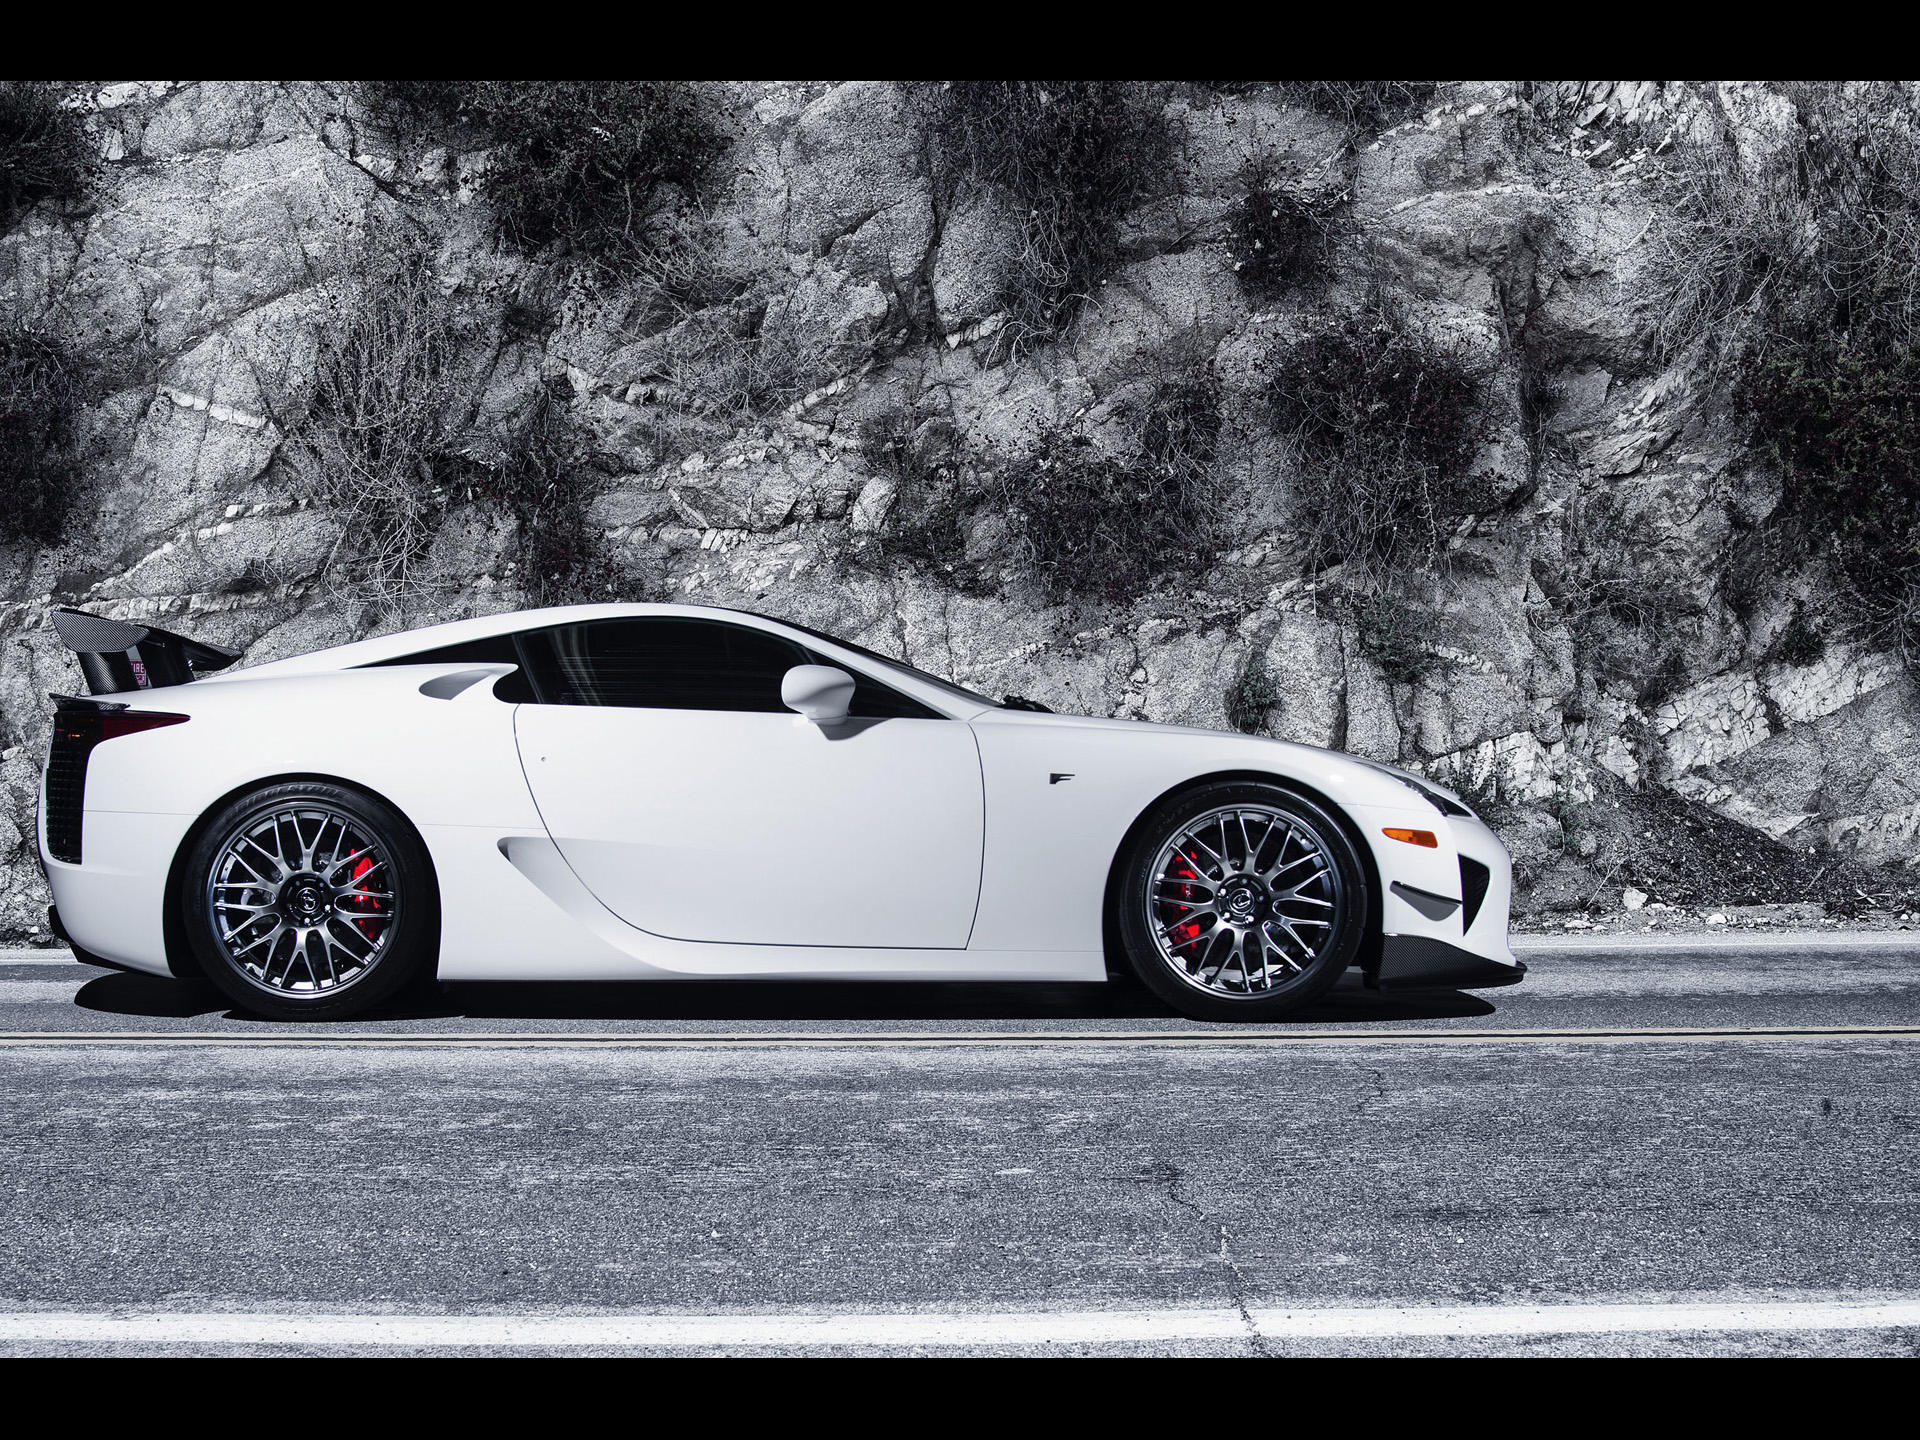 lexus lfa iphone wallpaper. 2013 lexus lfa nurburgring edition white static side wallpapers and stock photos lfa iphone wallpaper